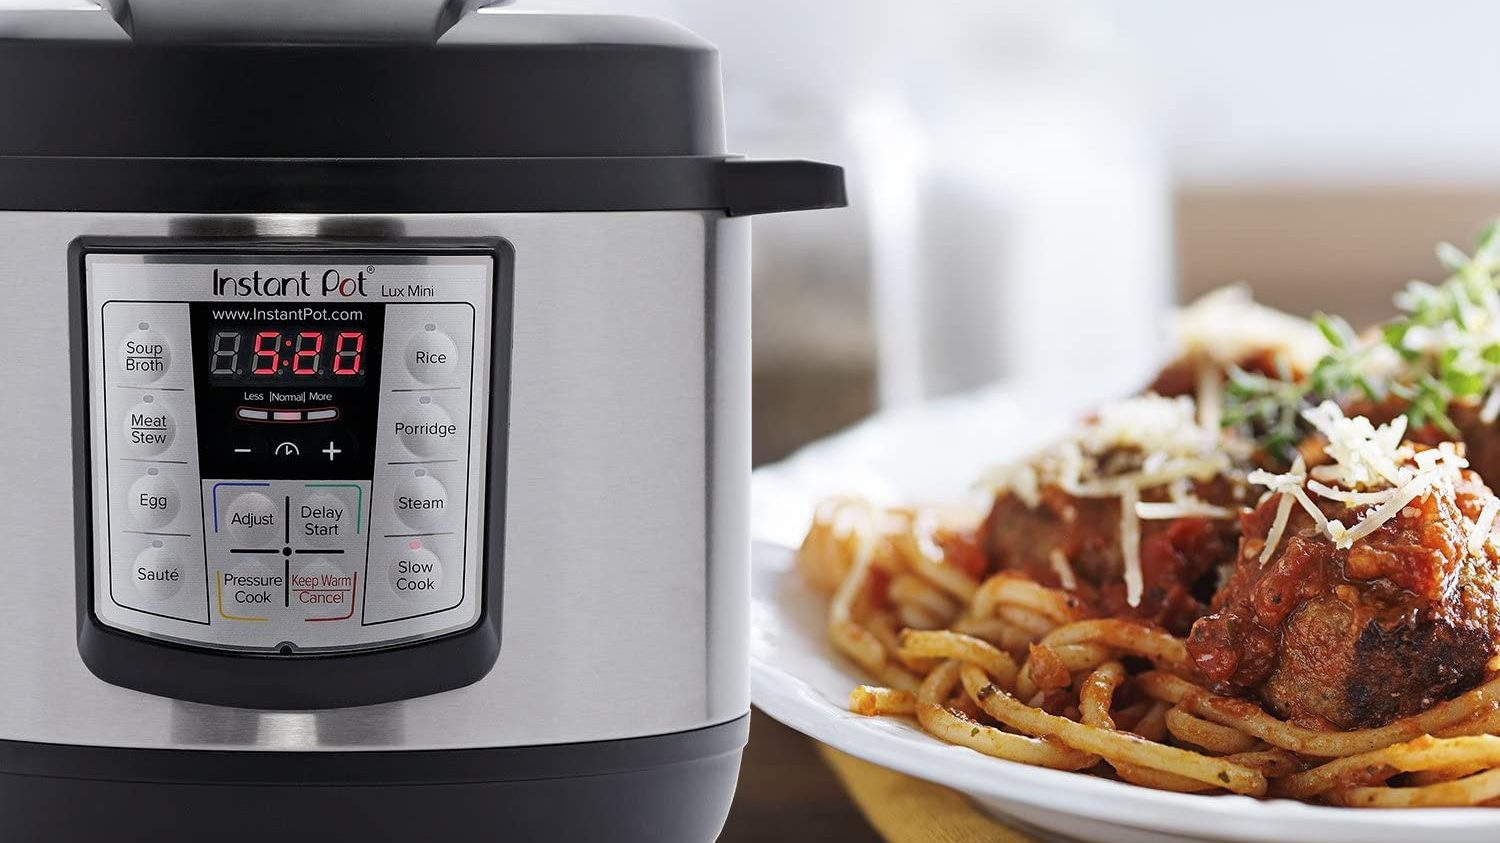 Get a best-selling Instant Pot cookbook with 800 delicious recipes for $5 at Amazon thumbnail